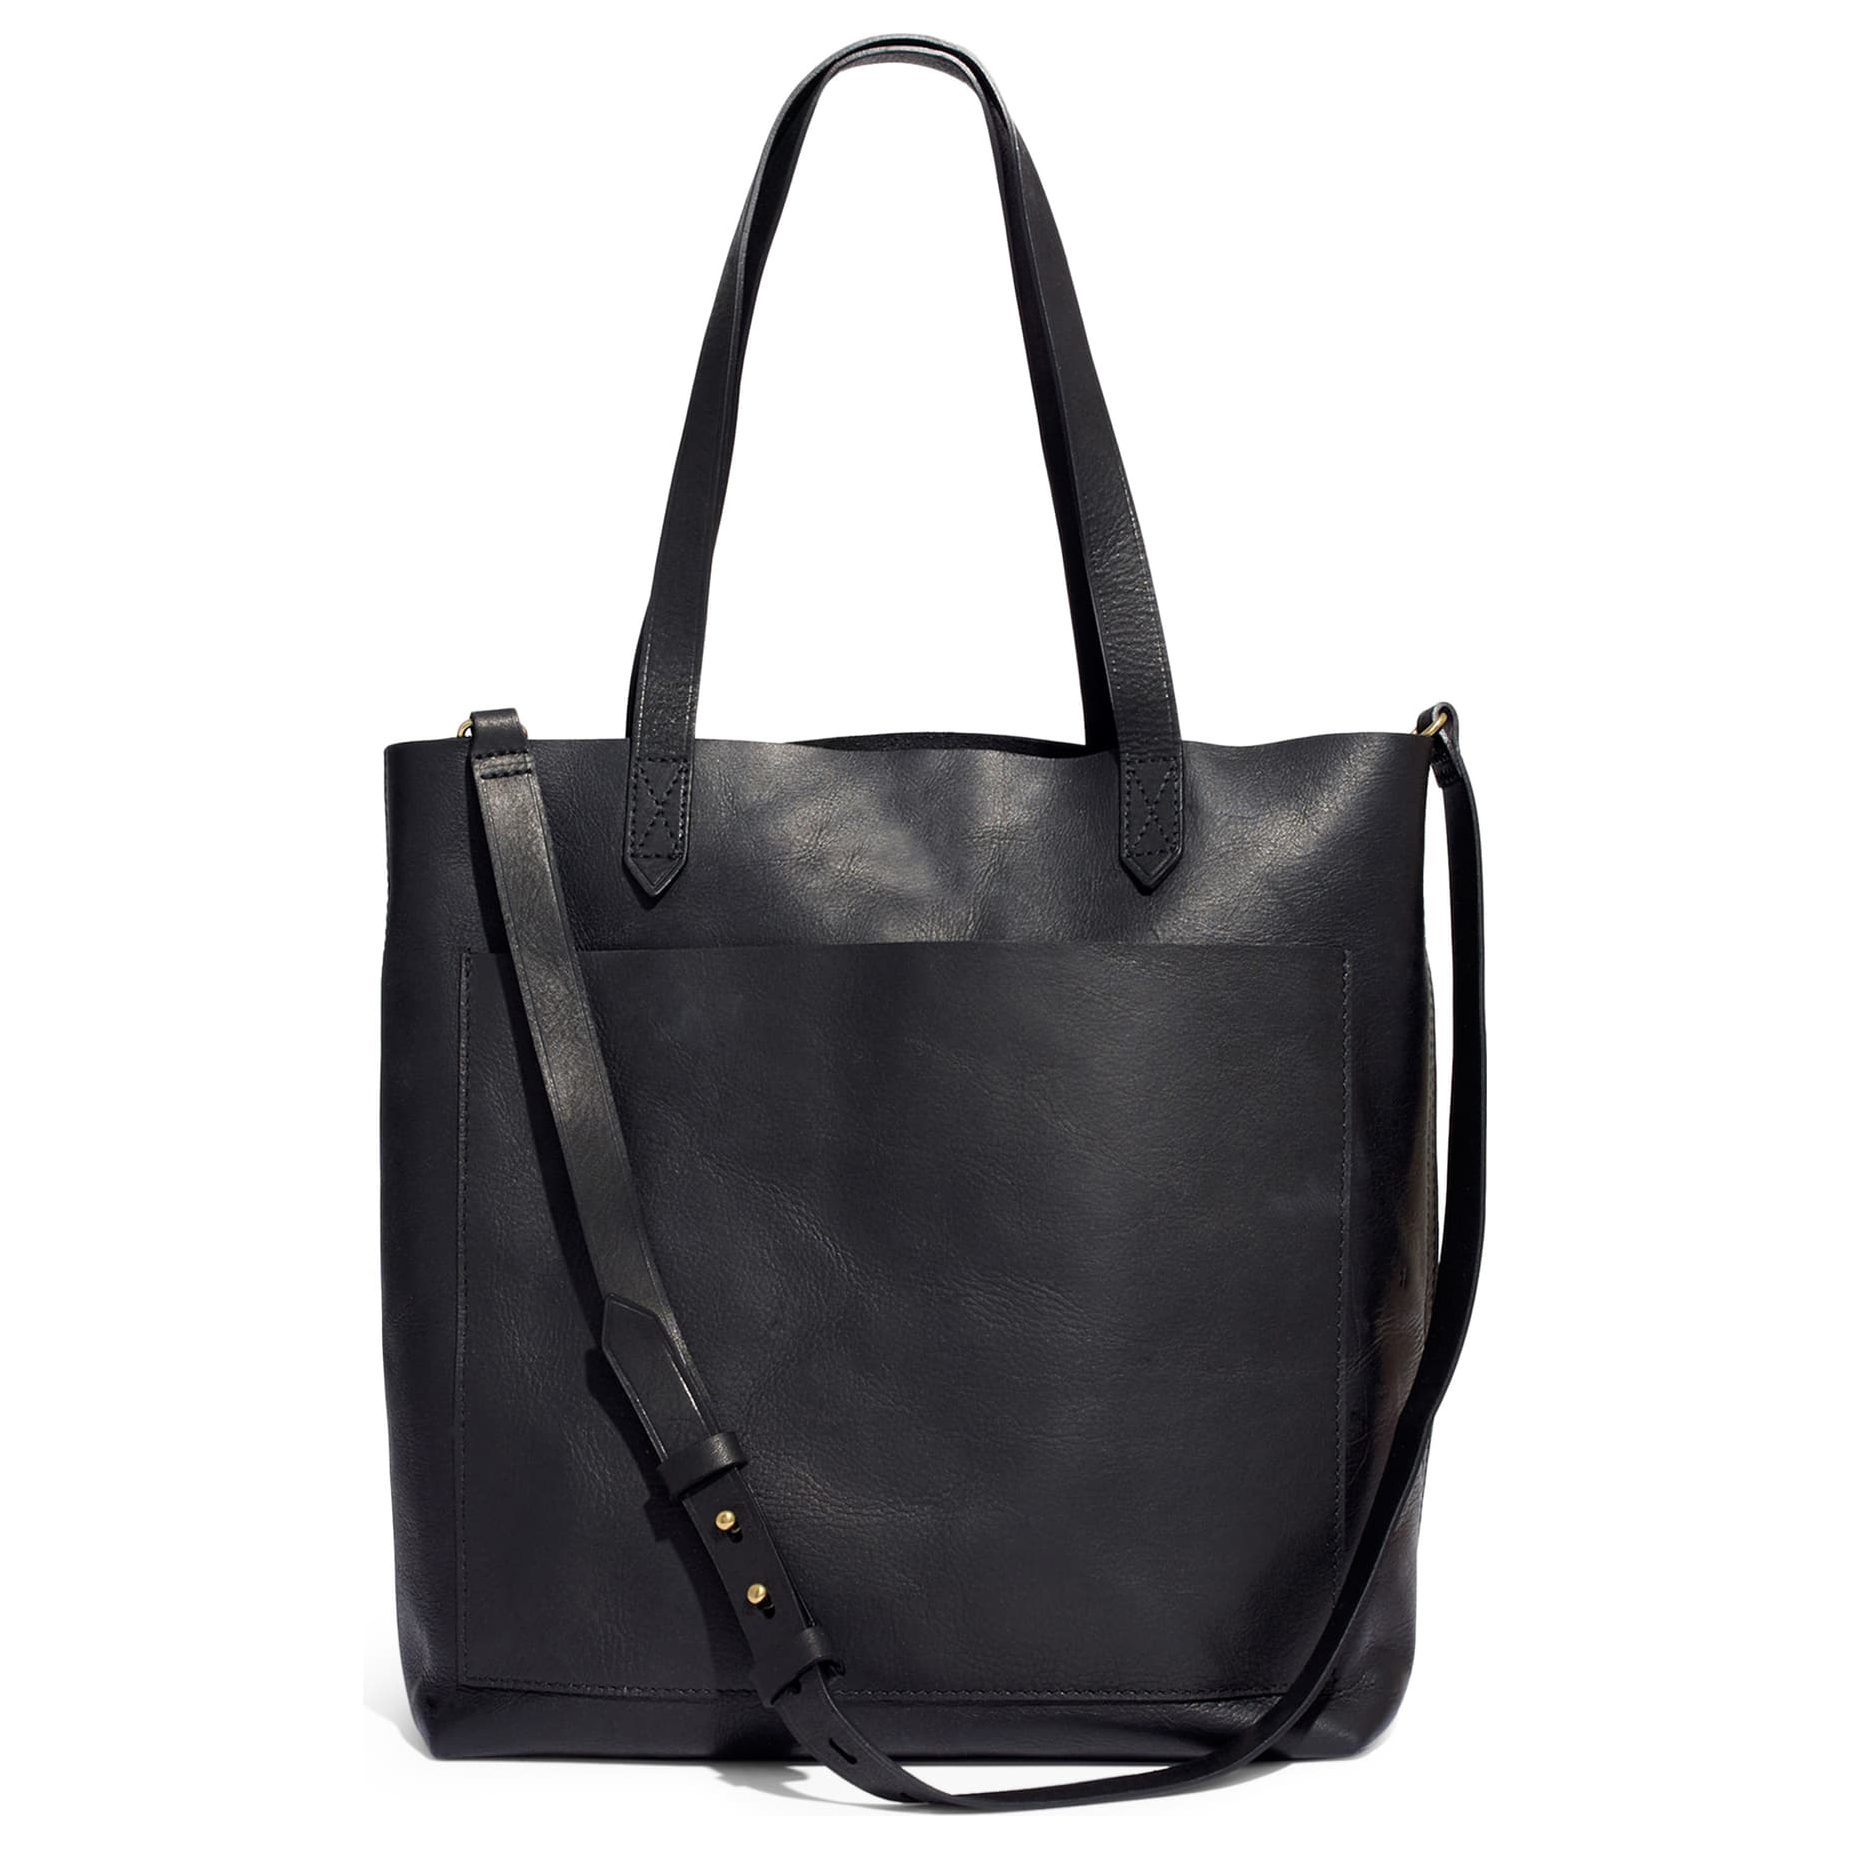 Madewell Medium Leather Transport Tote Black